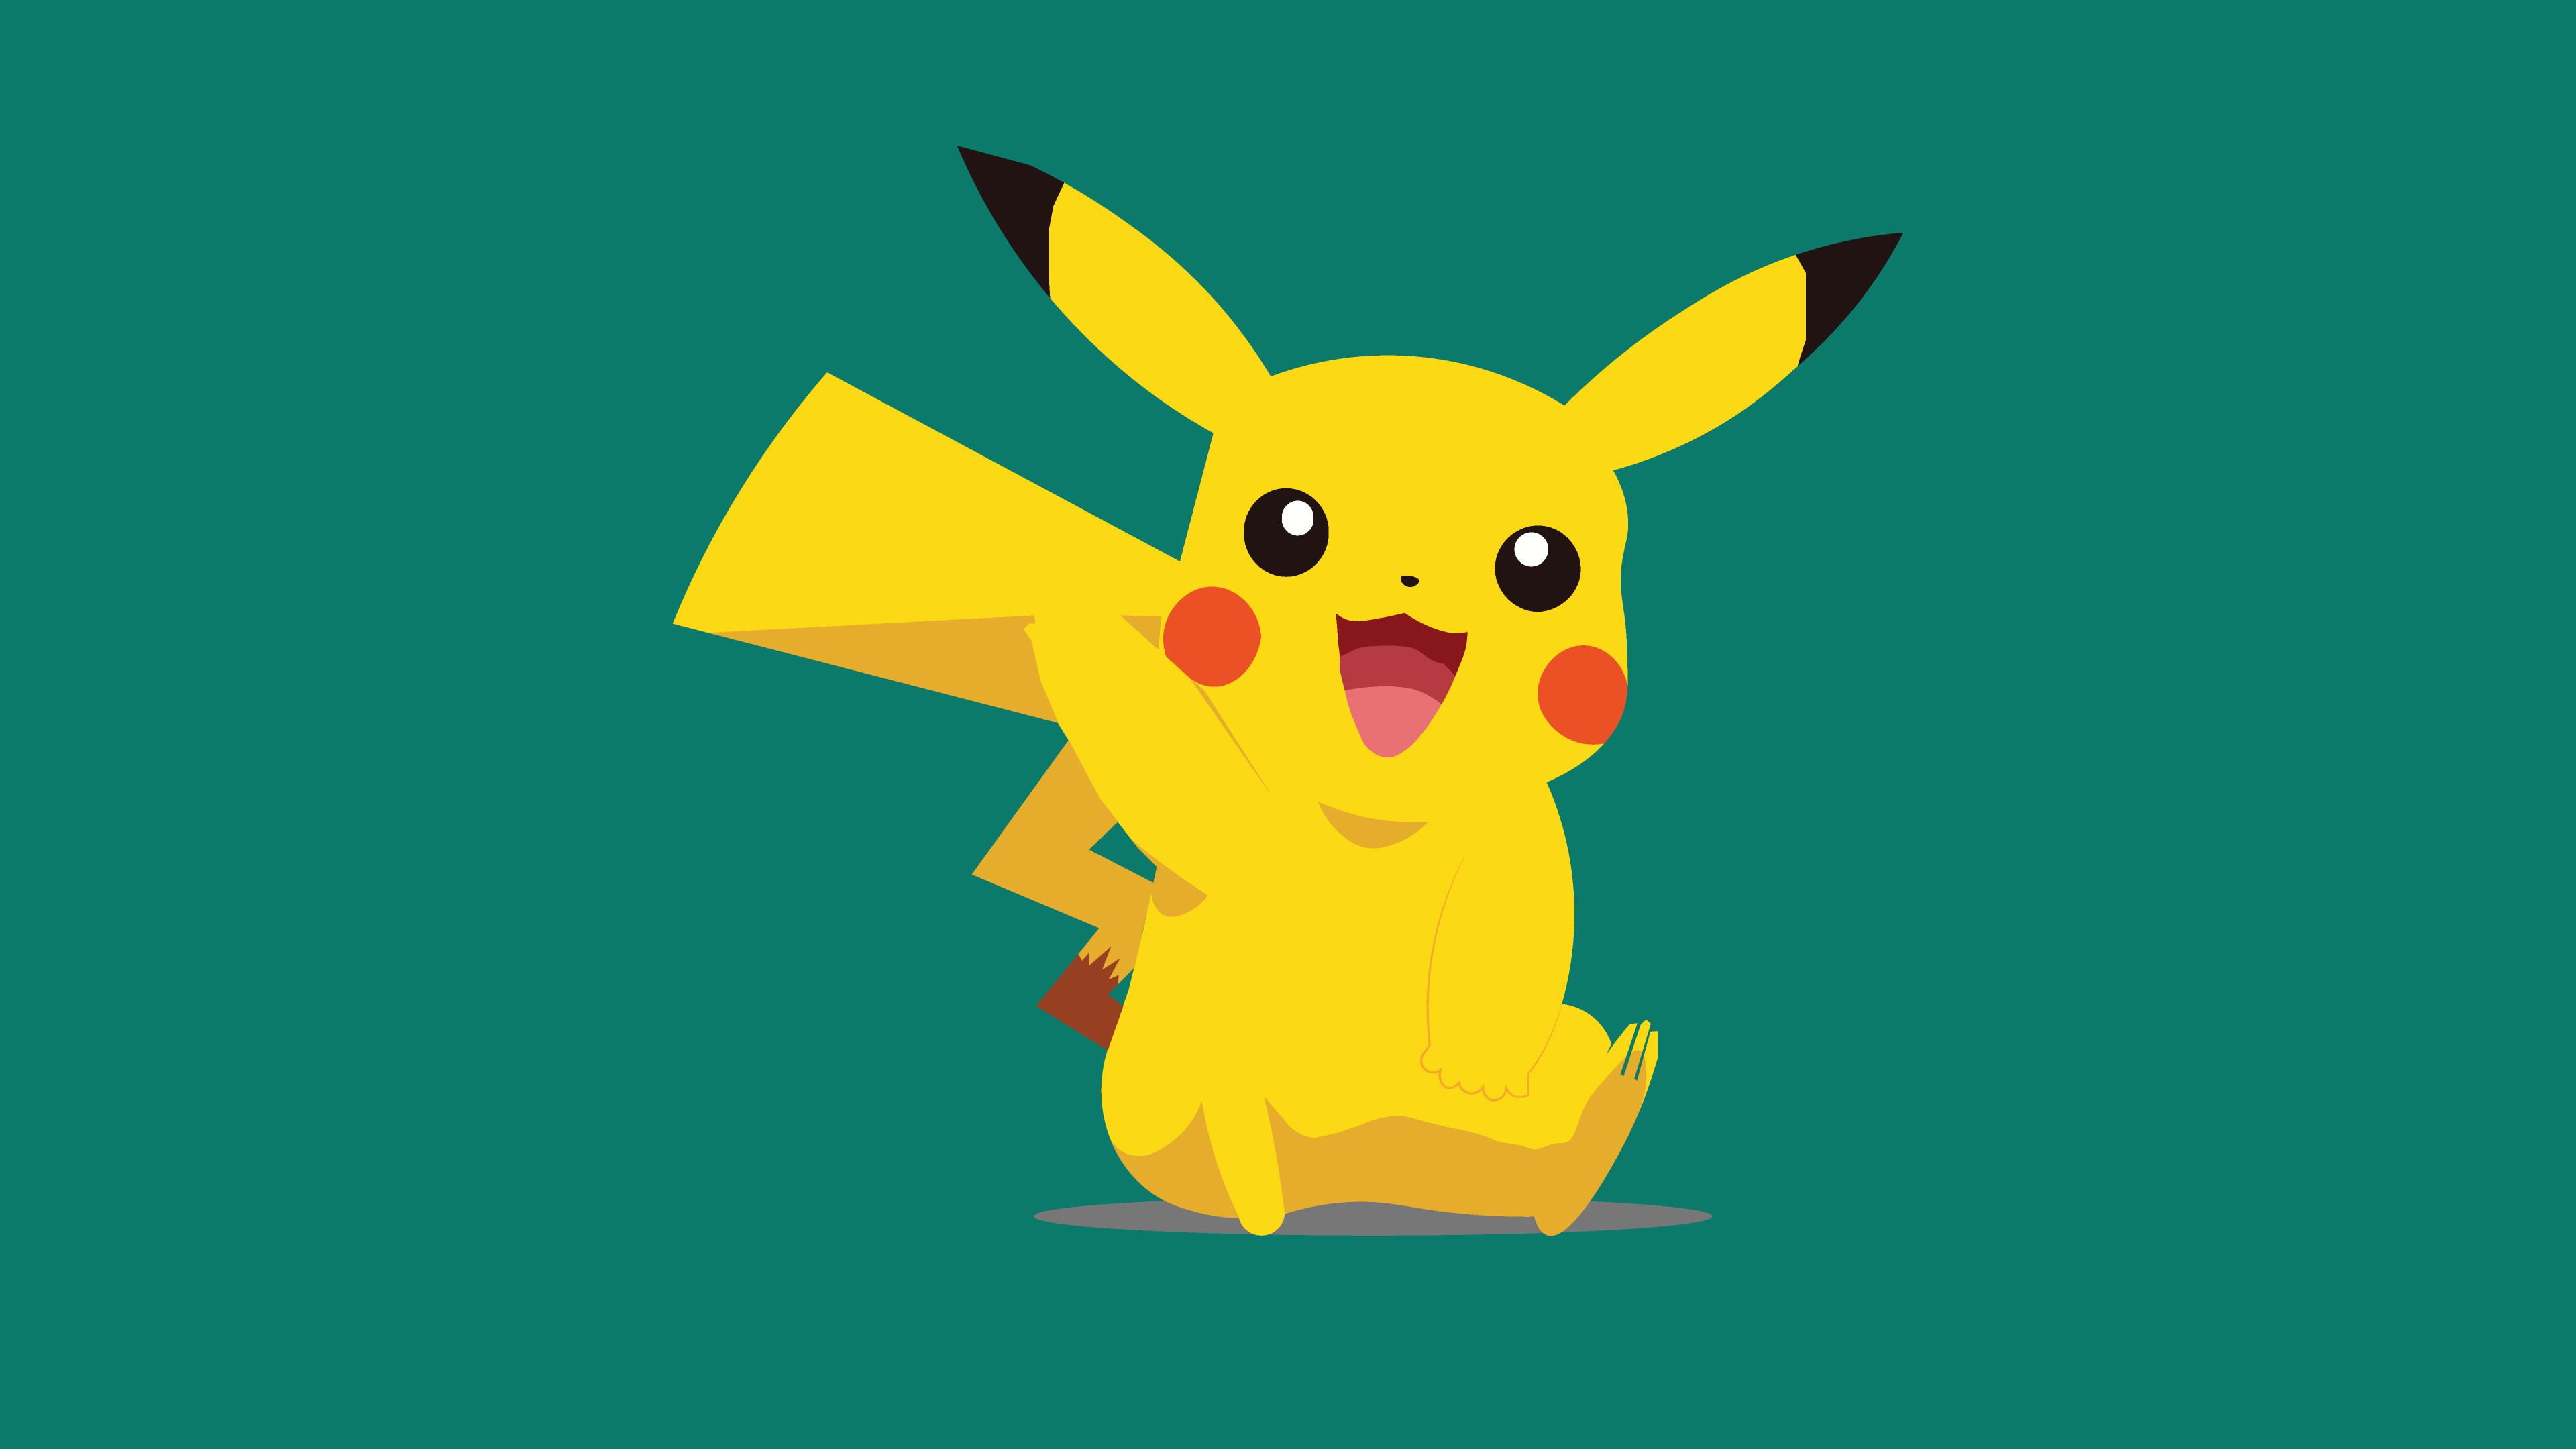 Cute Pikachu Hd Wallpapers Pikachu Wallpapers For Computer 64 Images